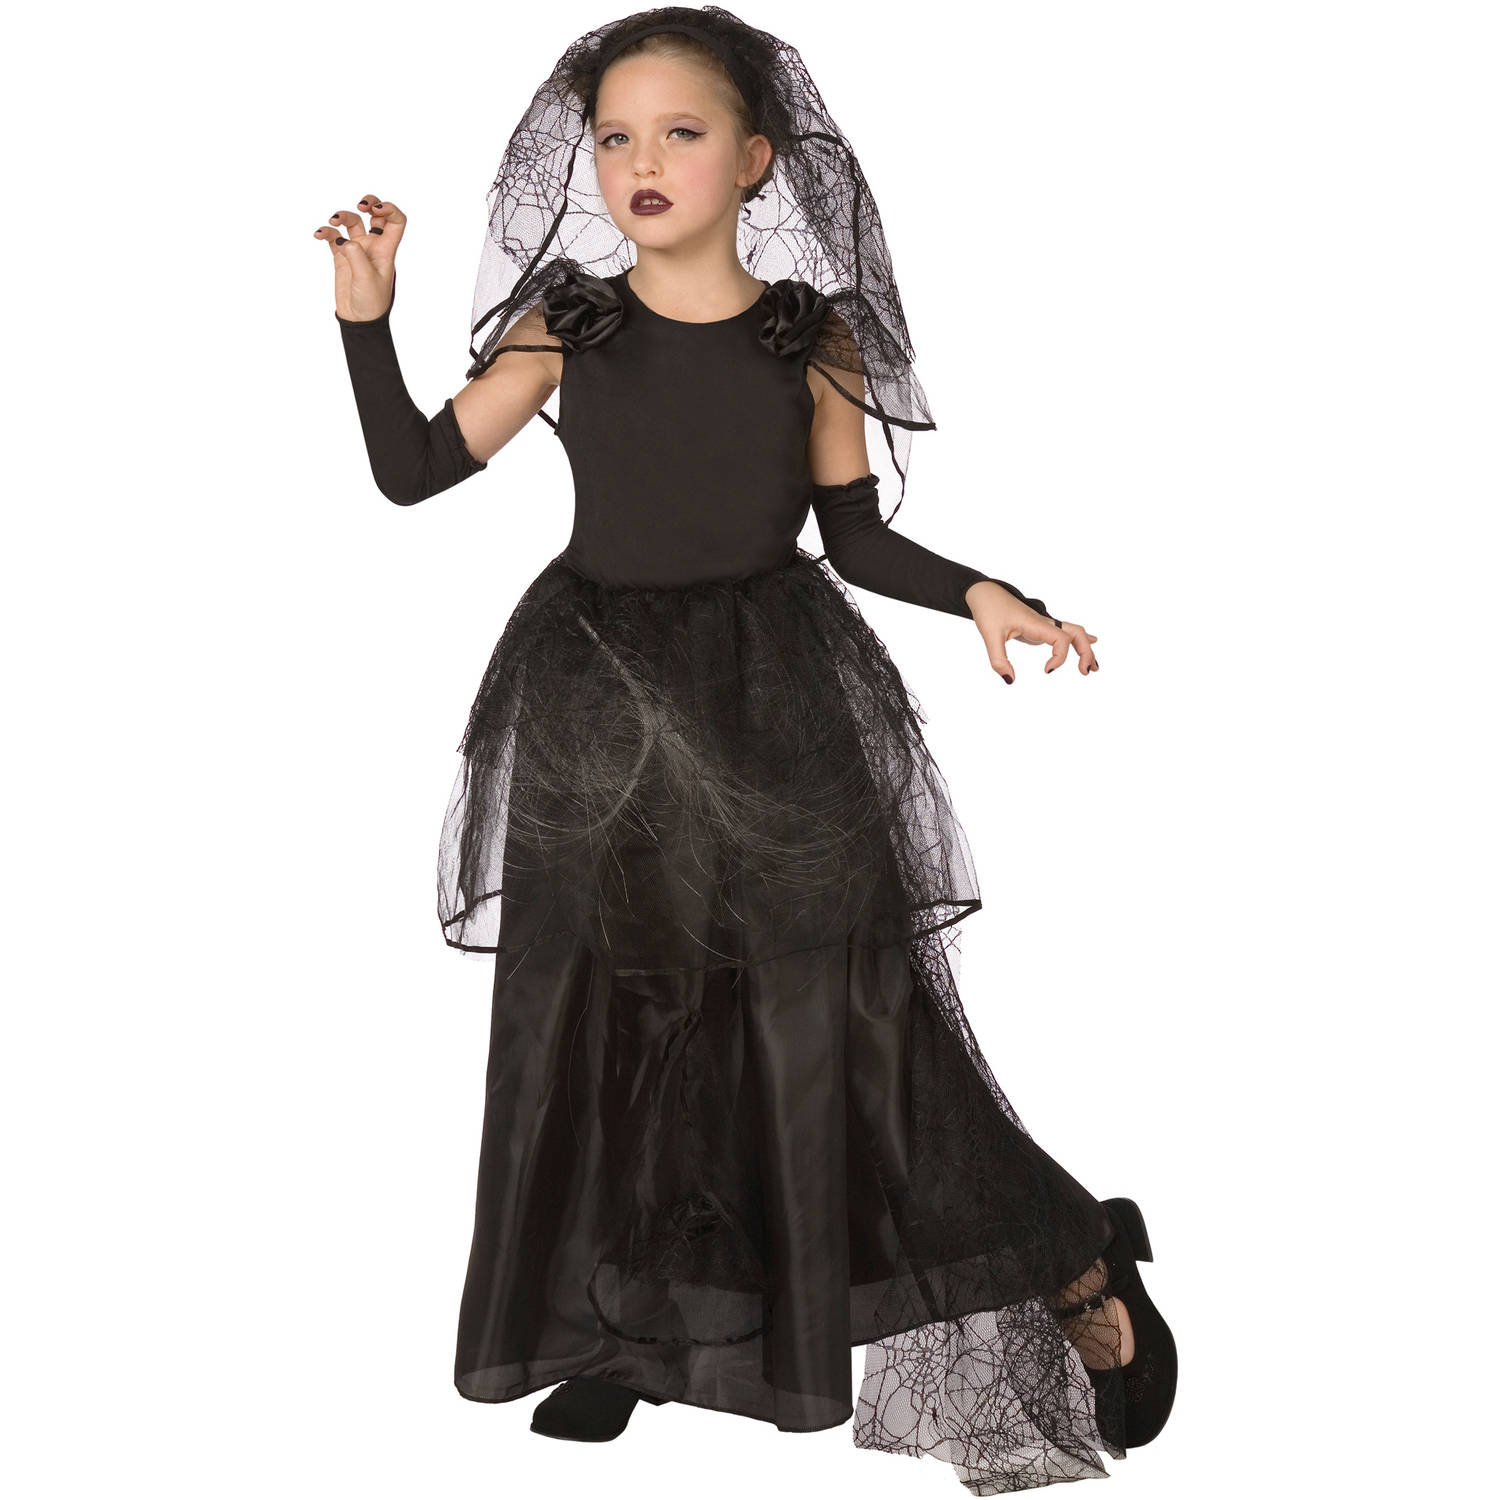 Dark Bride Child Halloween Dress Up / Role Play Costume